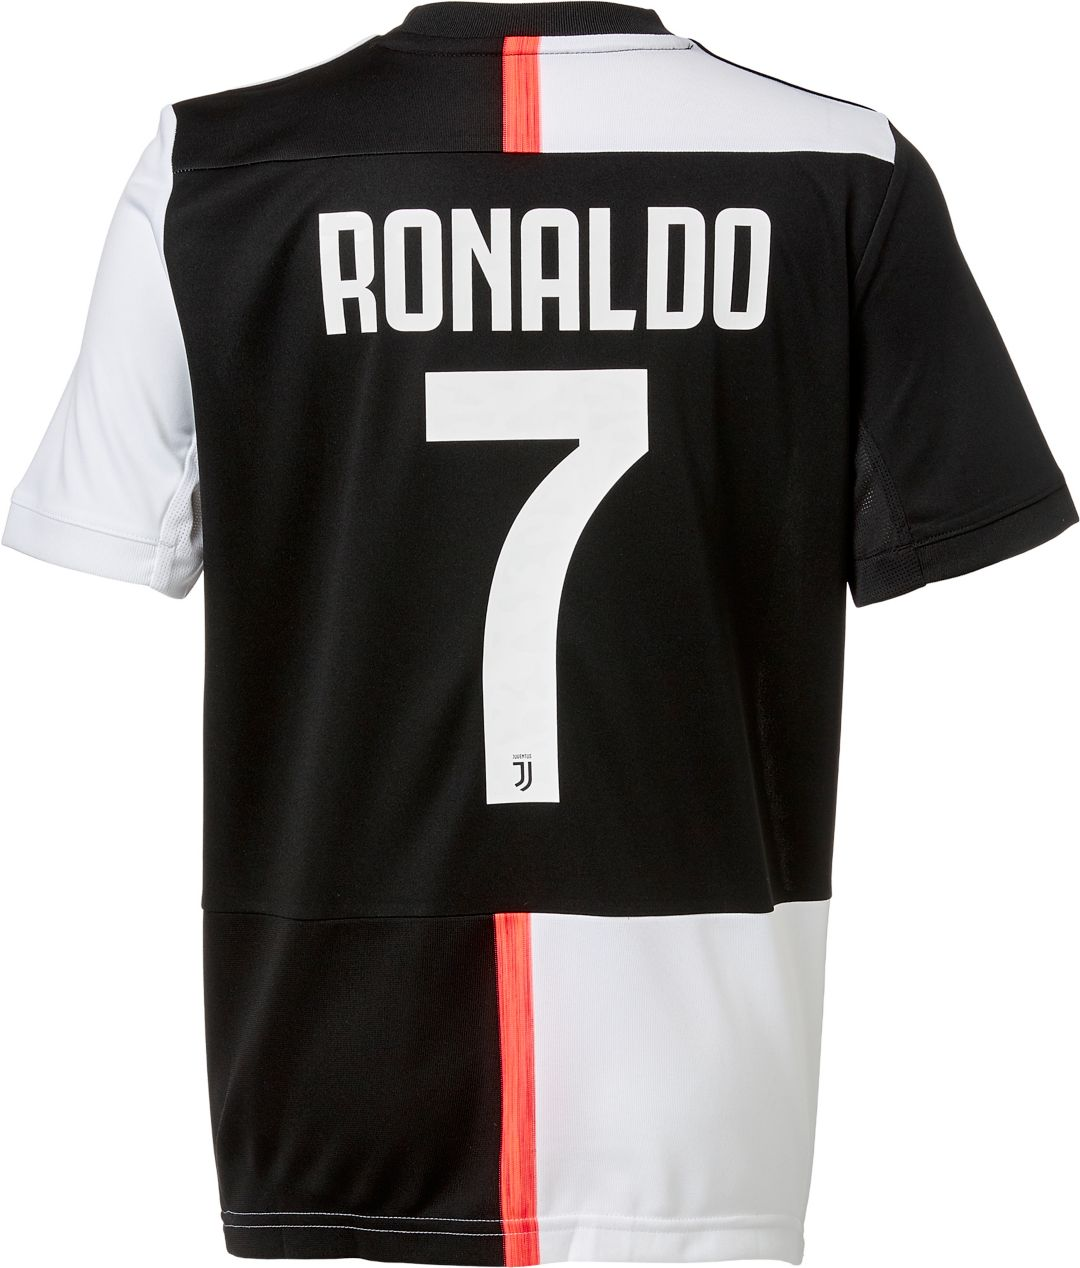 innovative design edc4f 1acaa adidas Men's Juventus '19 Stadium Cristiano Ronaldo #7 Home Replica Jersey